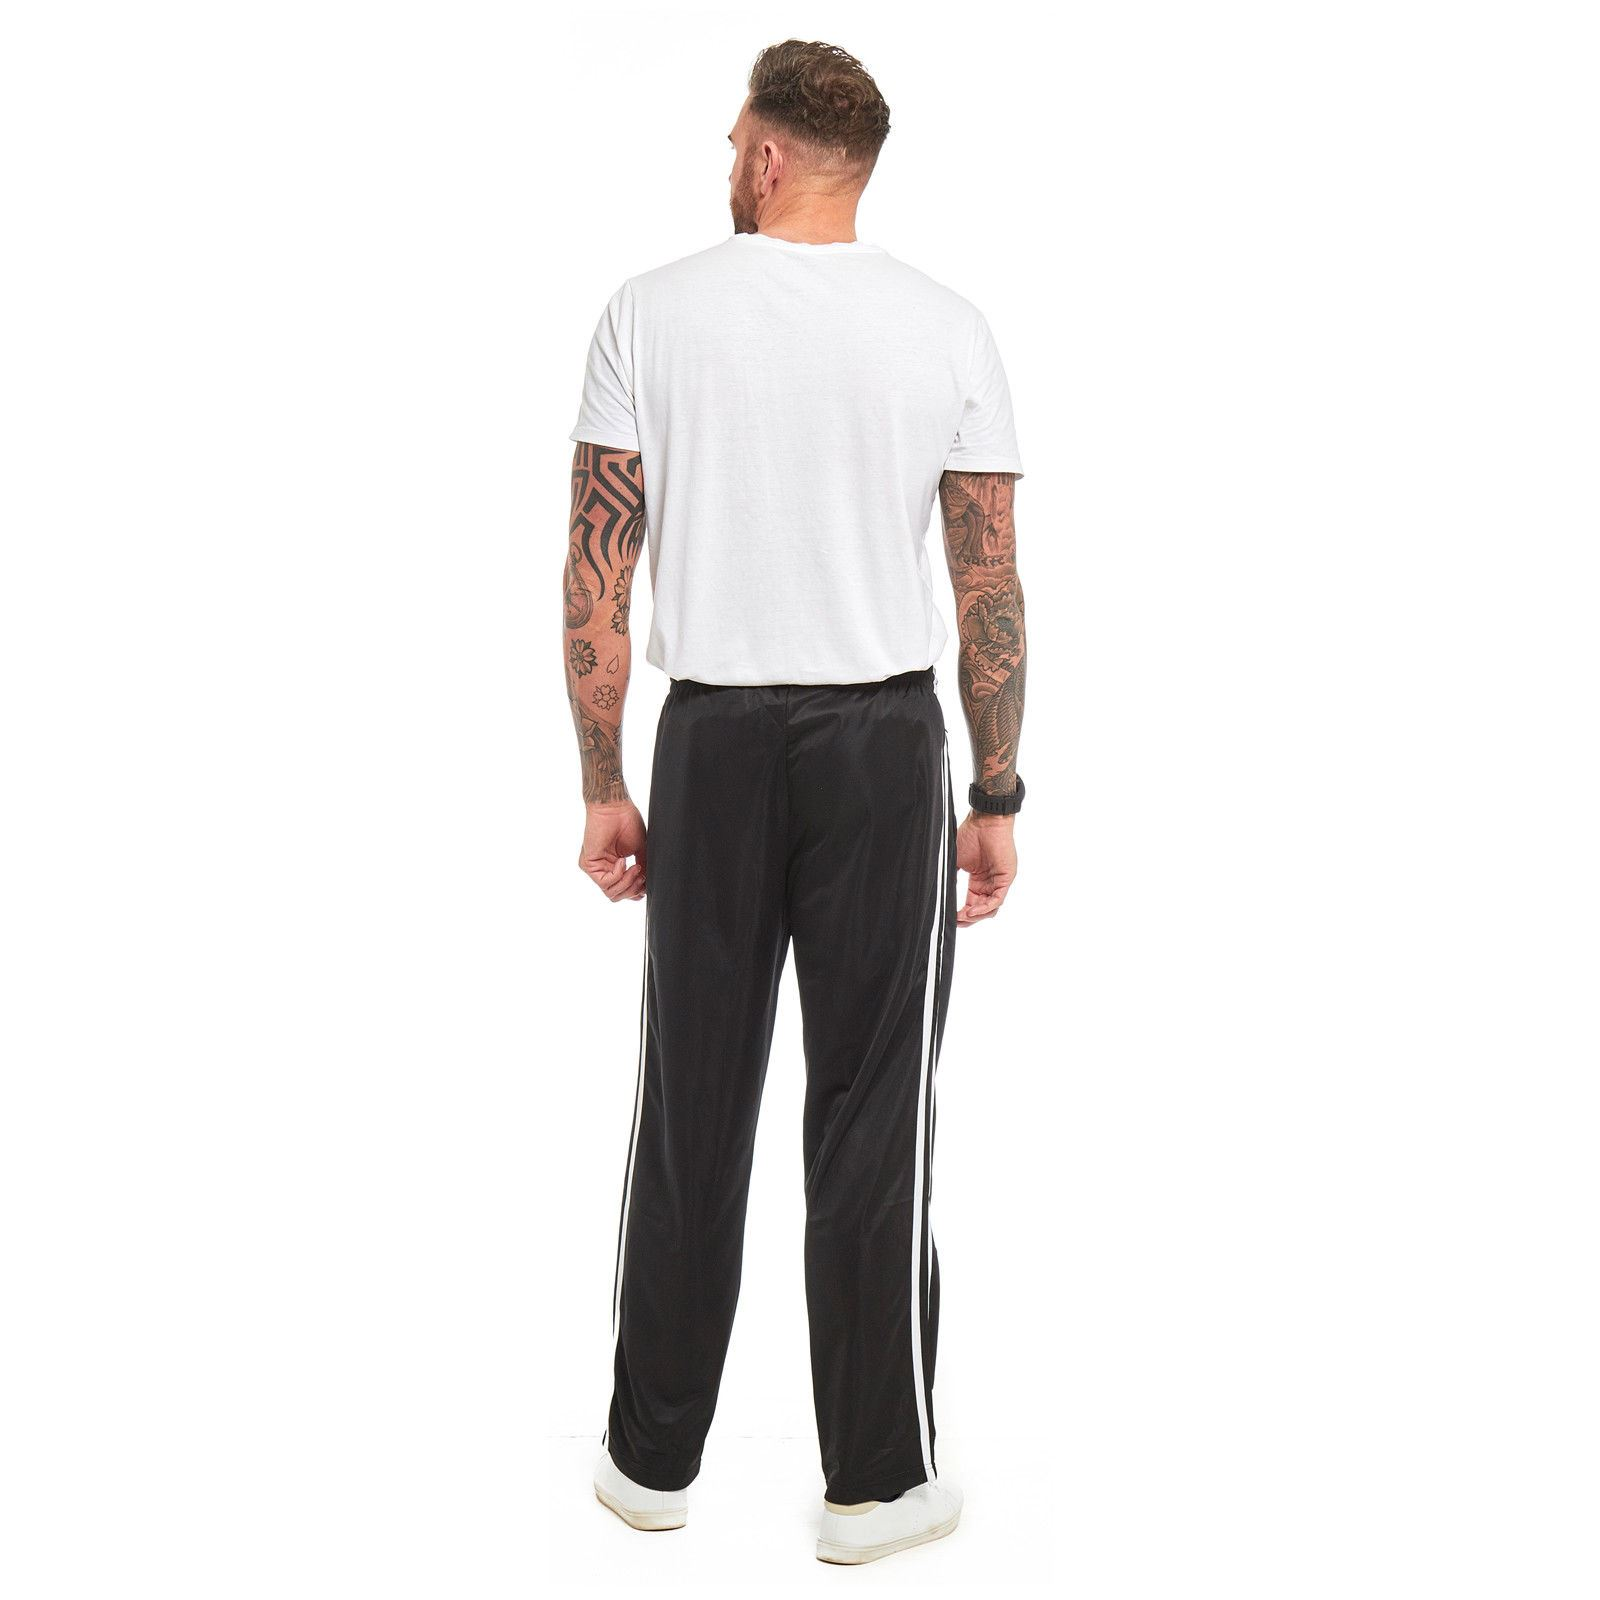 Mens-Tracksuit-Joggers-Jogging-Striped-Gym-Sports-Silky-Bottoms-Trousers-Pants thumbnail 5